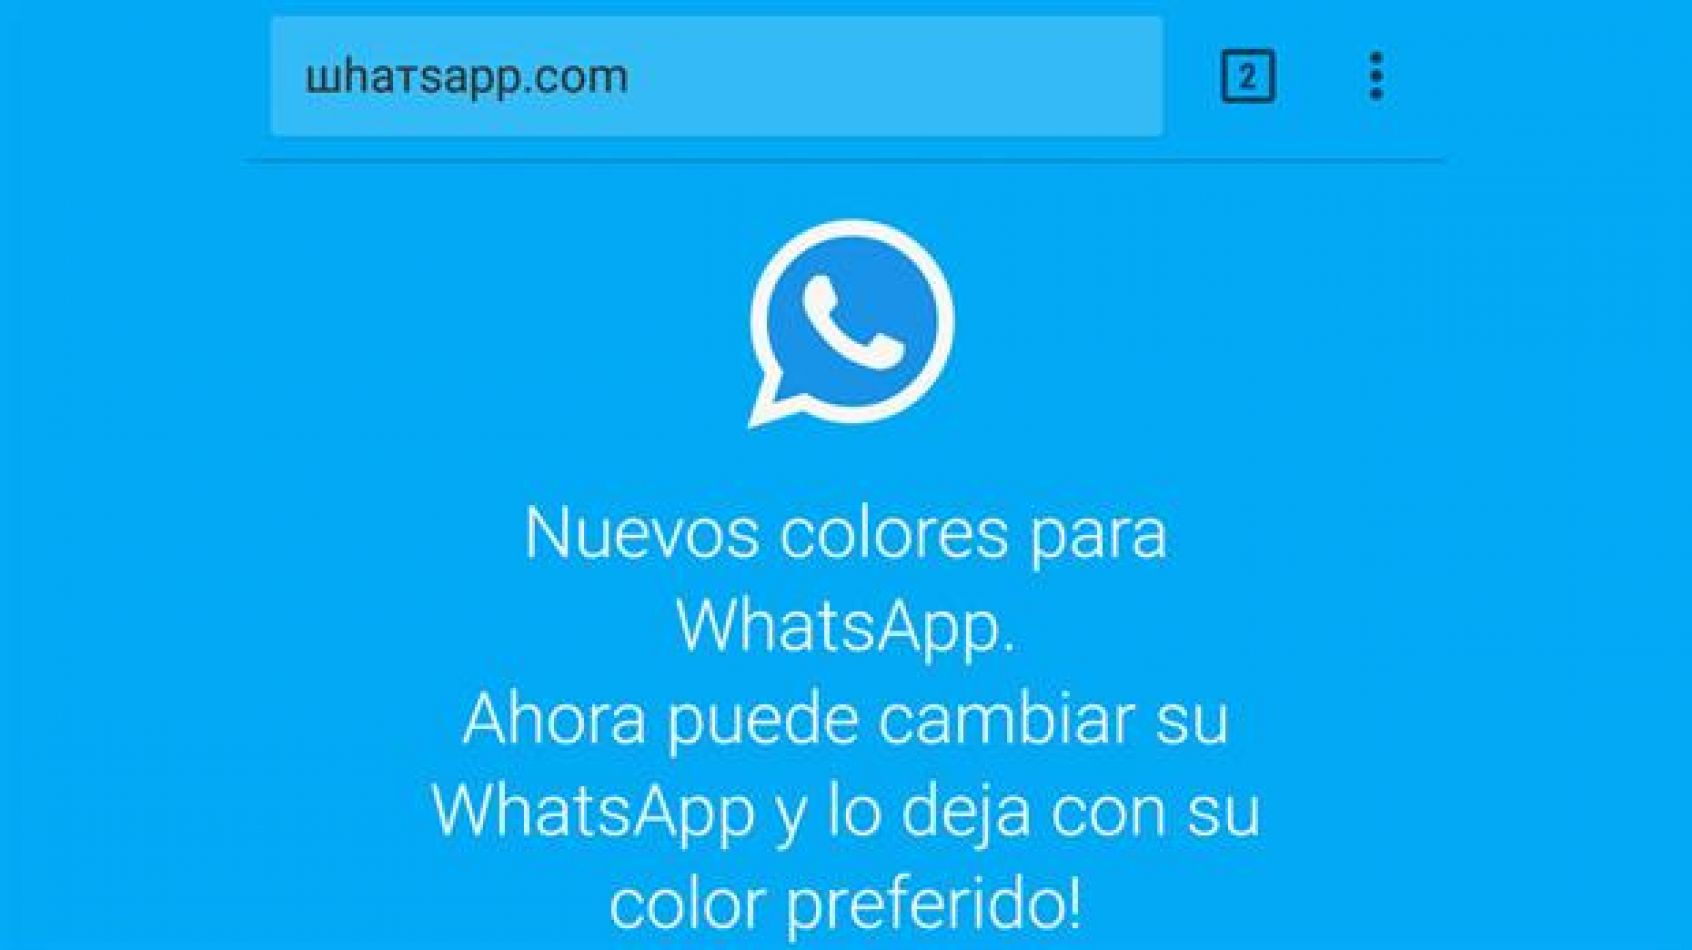 ¡Ojo! La estafa del WhatsApp en colores